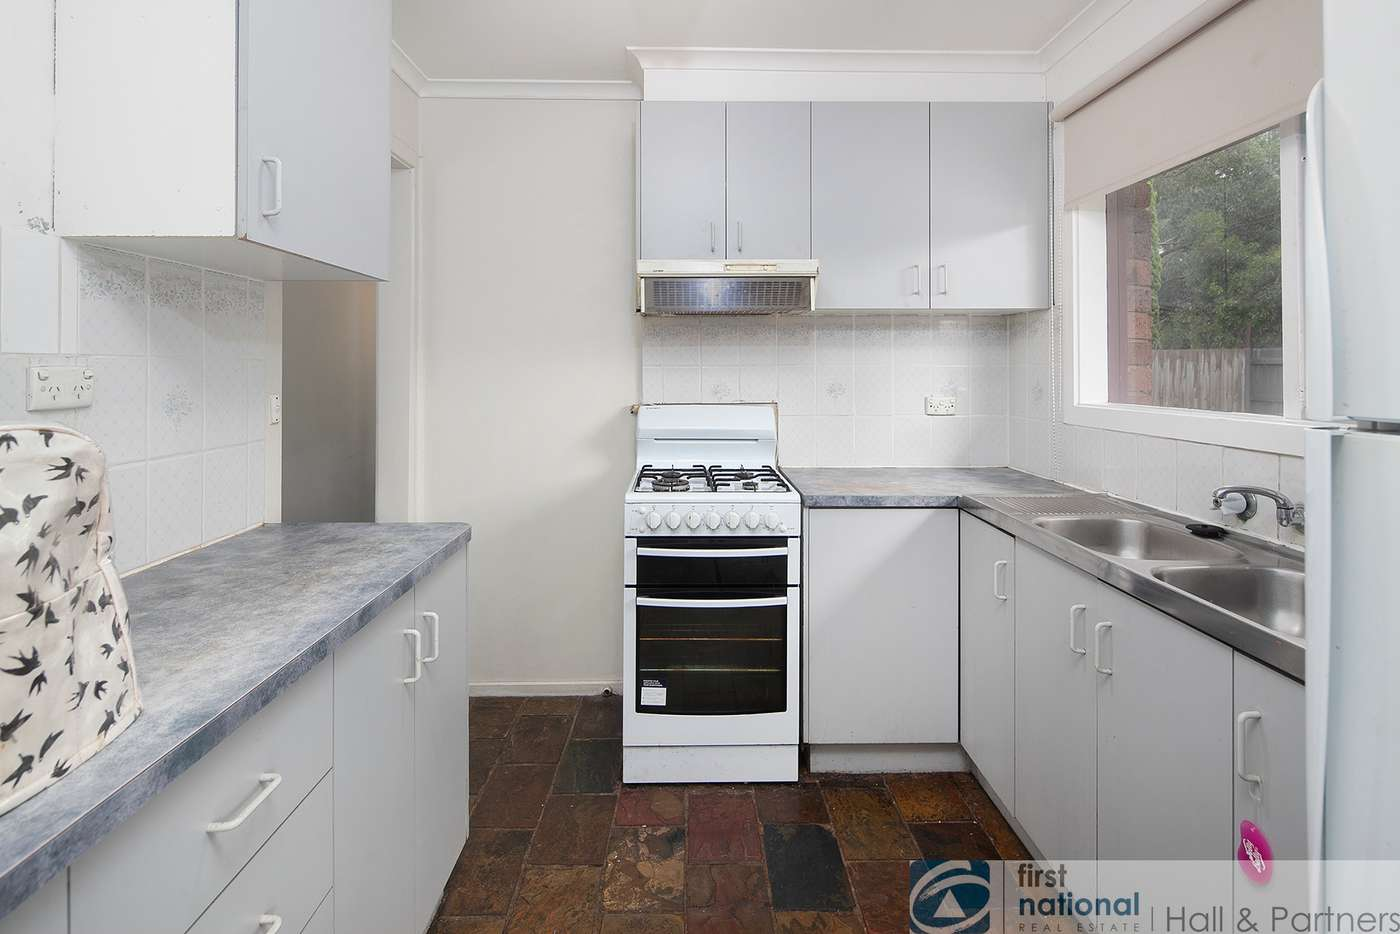 Seventh view of Homely house listing, 10 Fernbank Crescent, Mulgrave VIC 3170